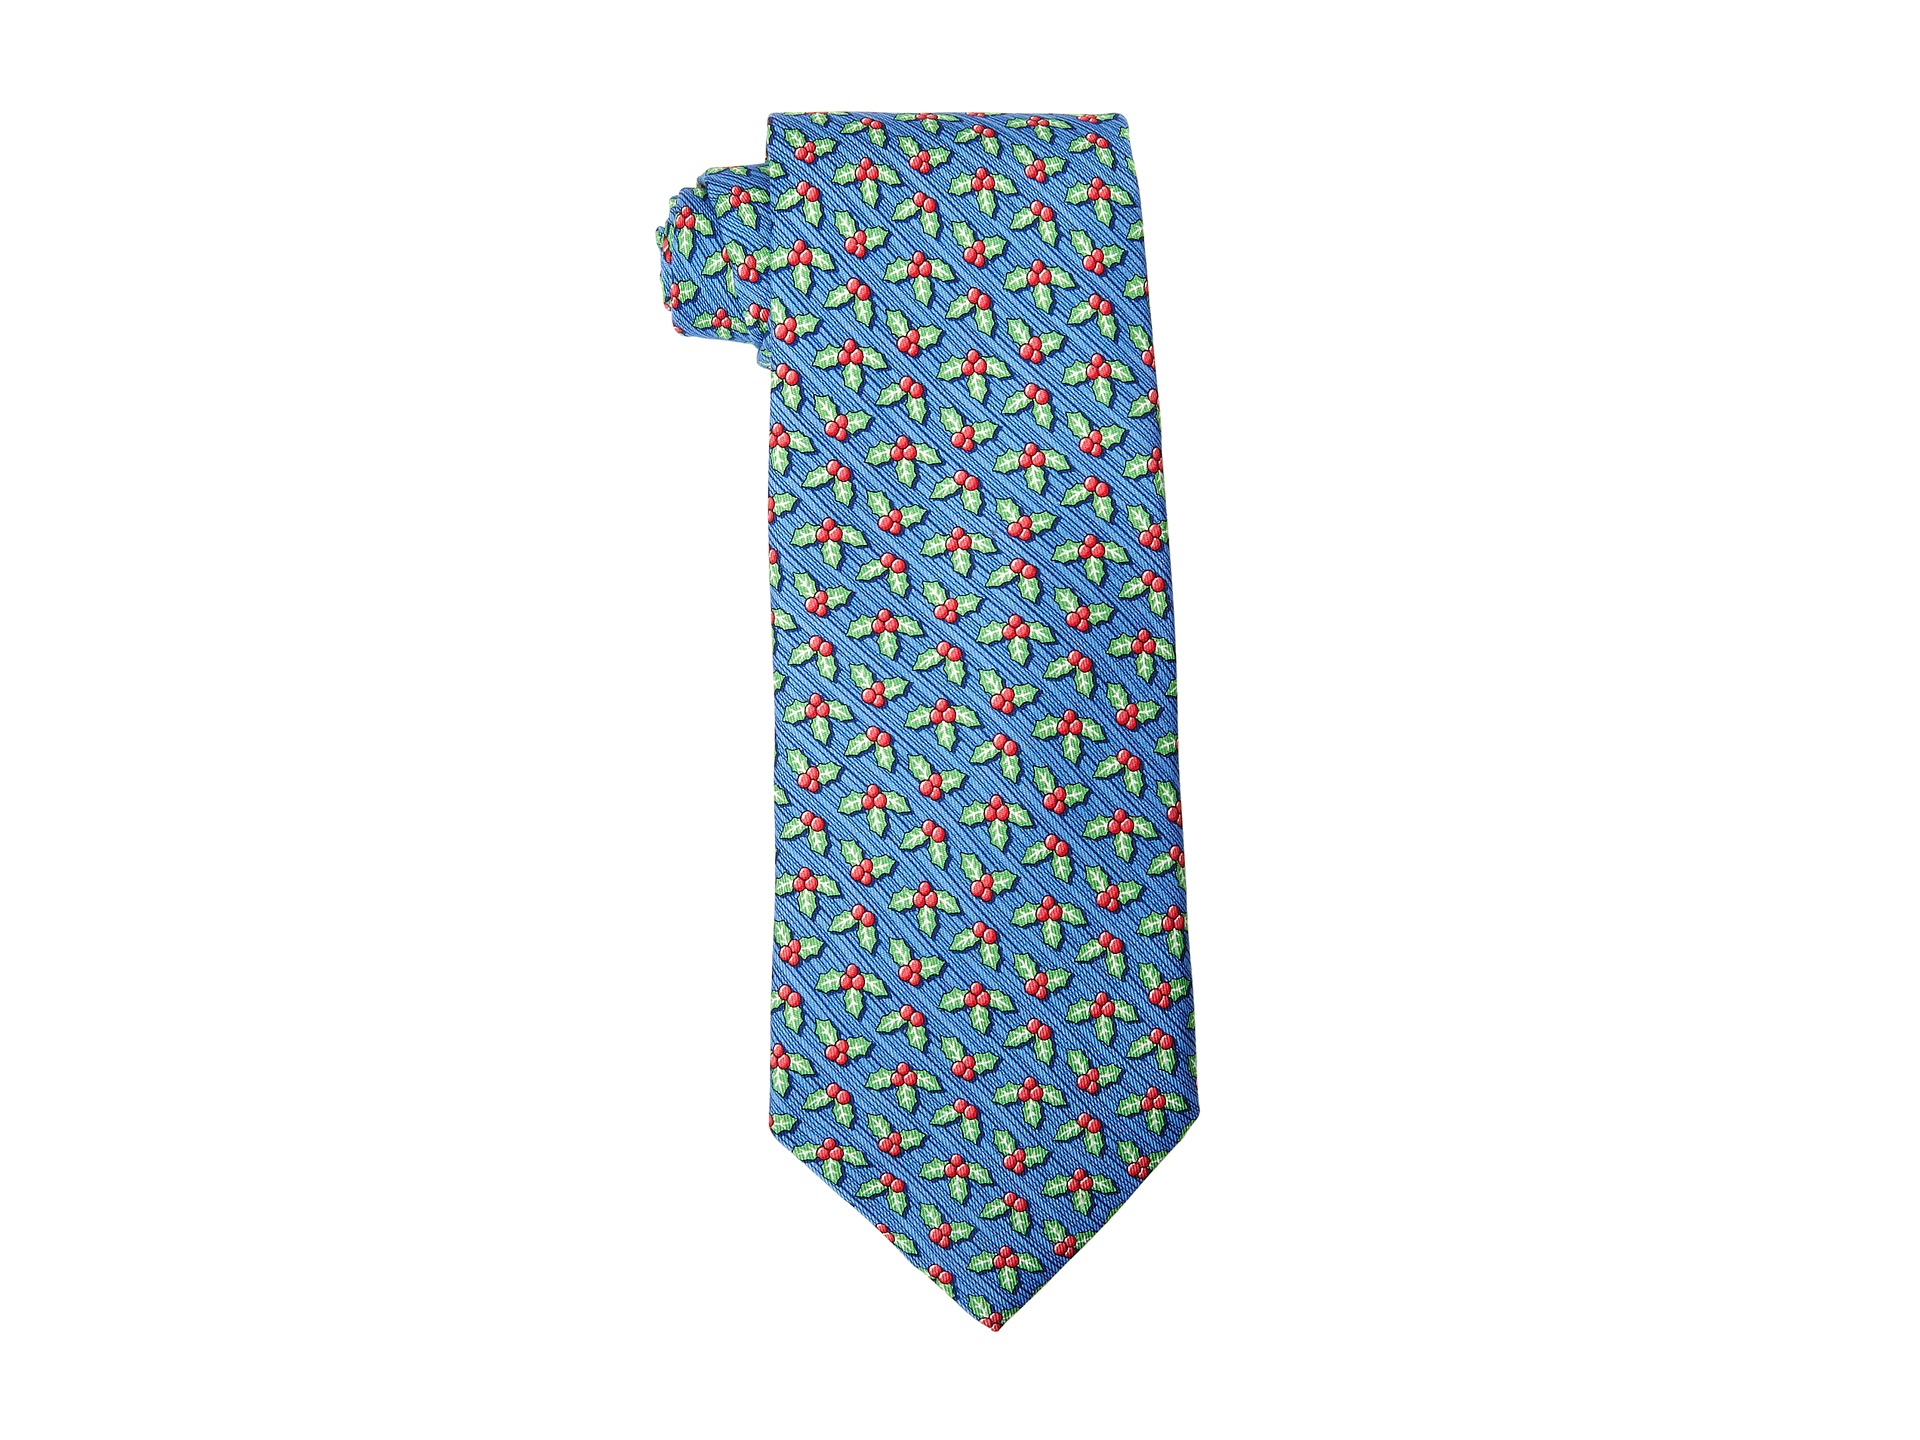 vineyard vines tie blue shipped free at zappos